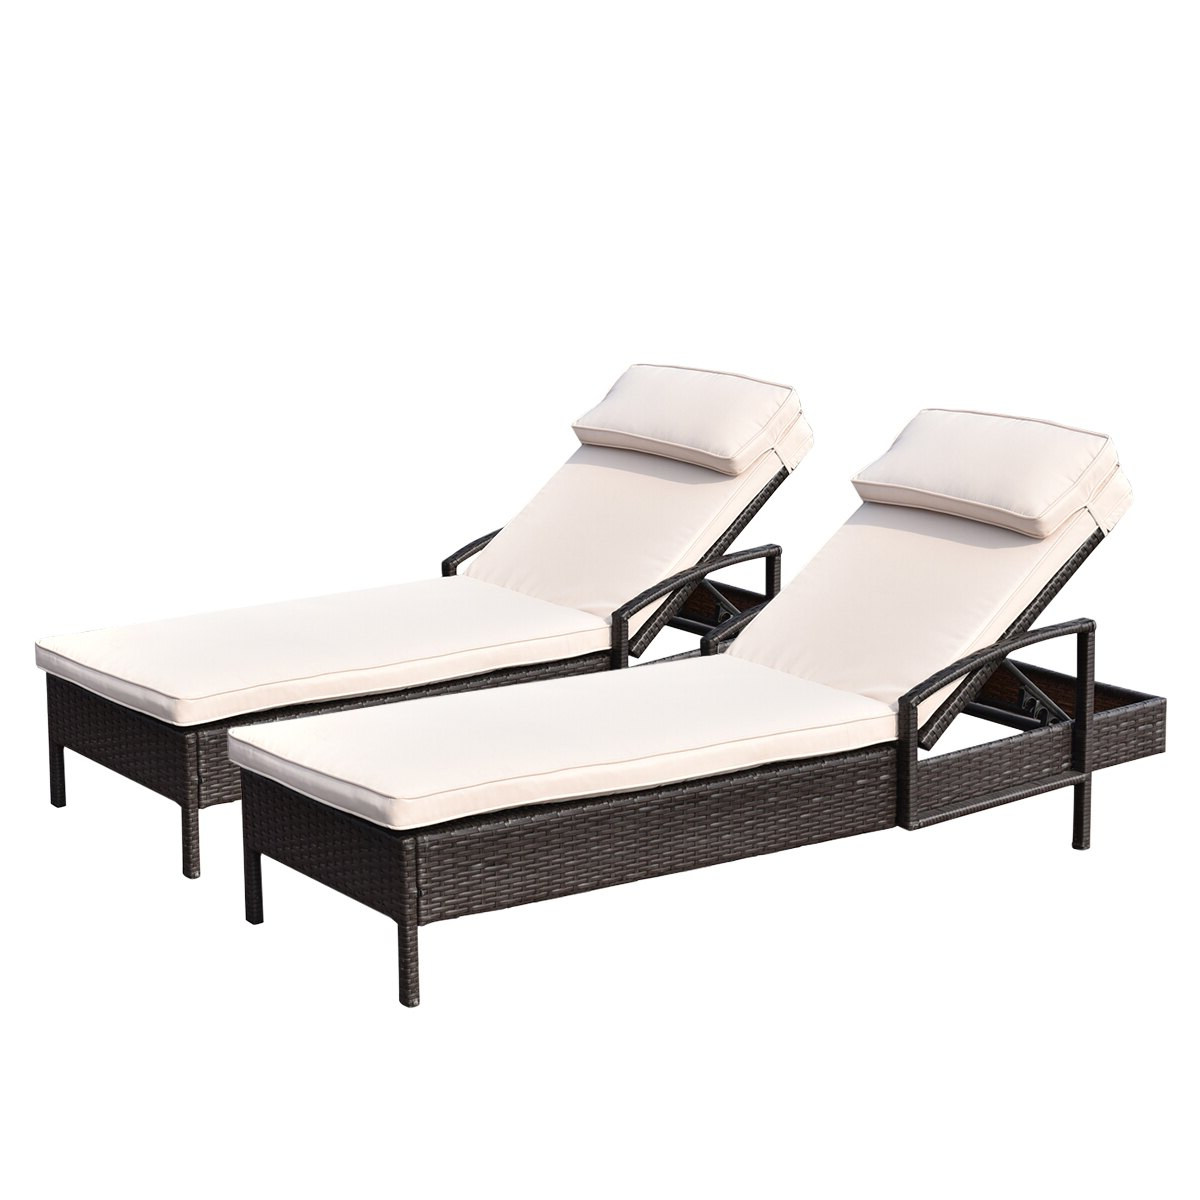 Famous Costway 2 Pcs Chaise Lounge Chair Brown Outdoor Rattan Couch Patio Furniture W/pillow With Resin Wicker Multi Position Double Patio Chaise Lounges (View 19 of 25)